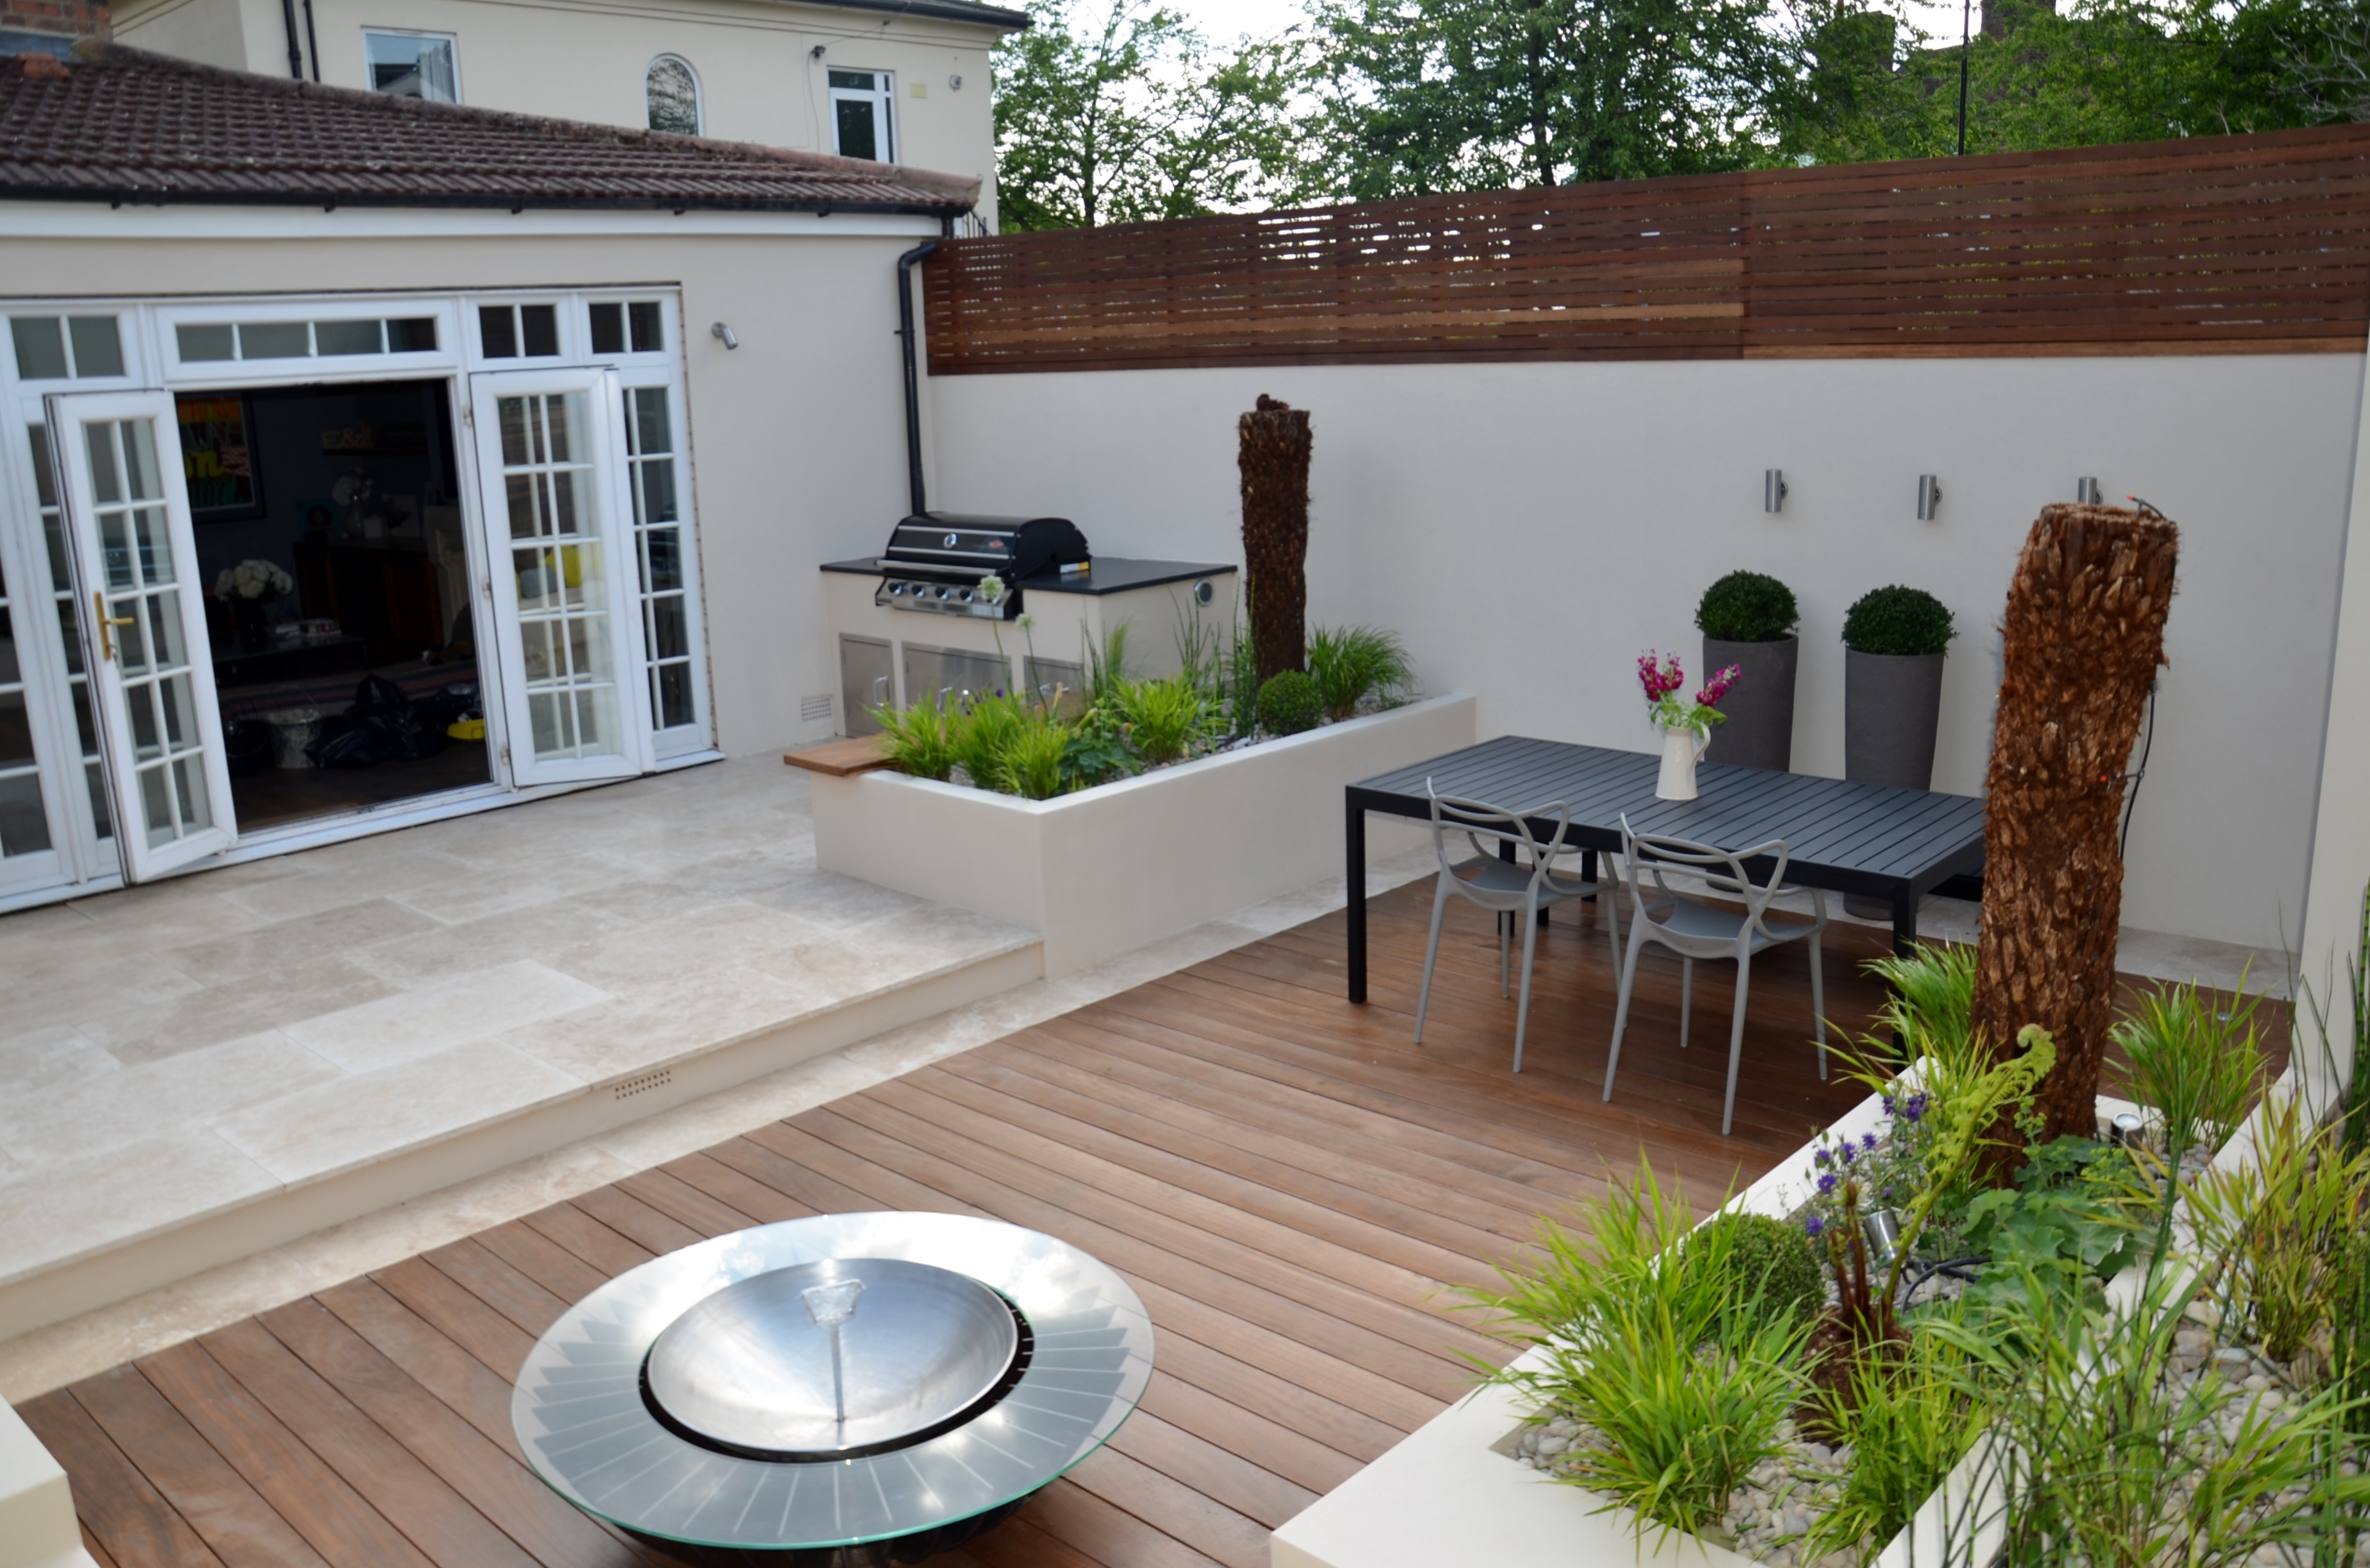 modern garden design outdoor room with kitchen seating  cheam richmond